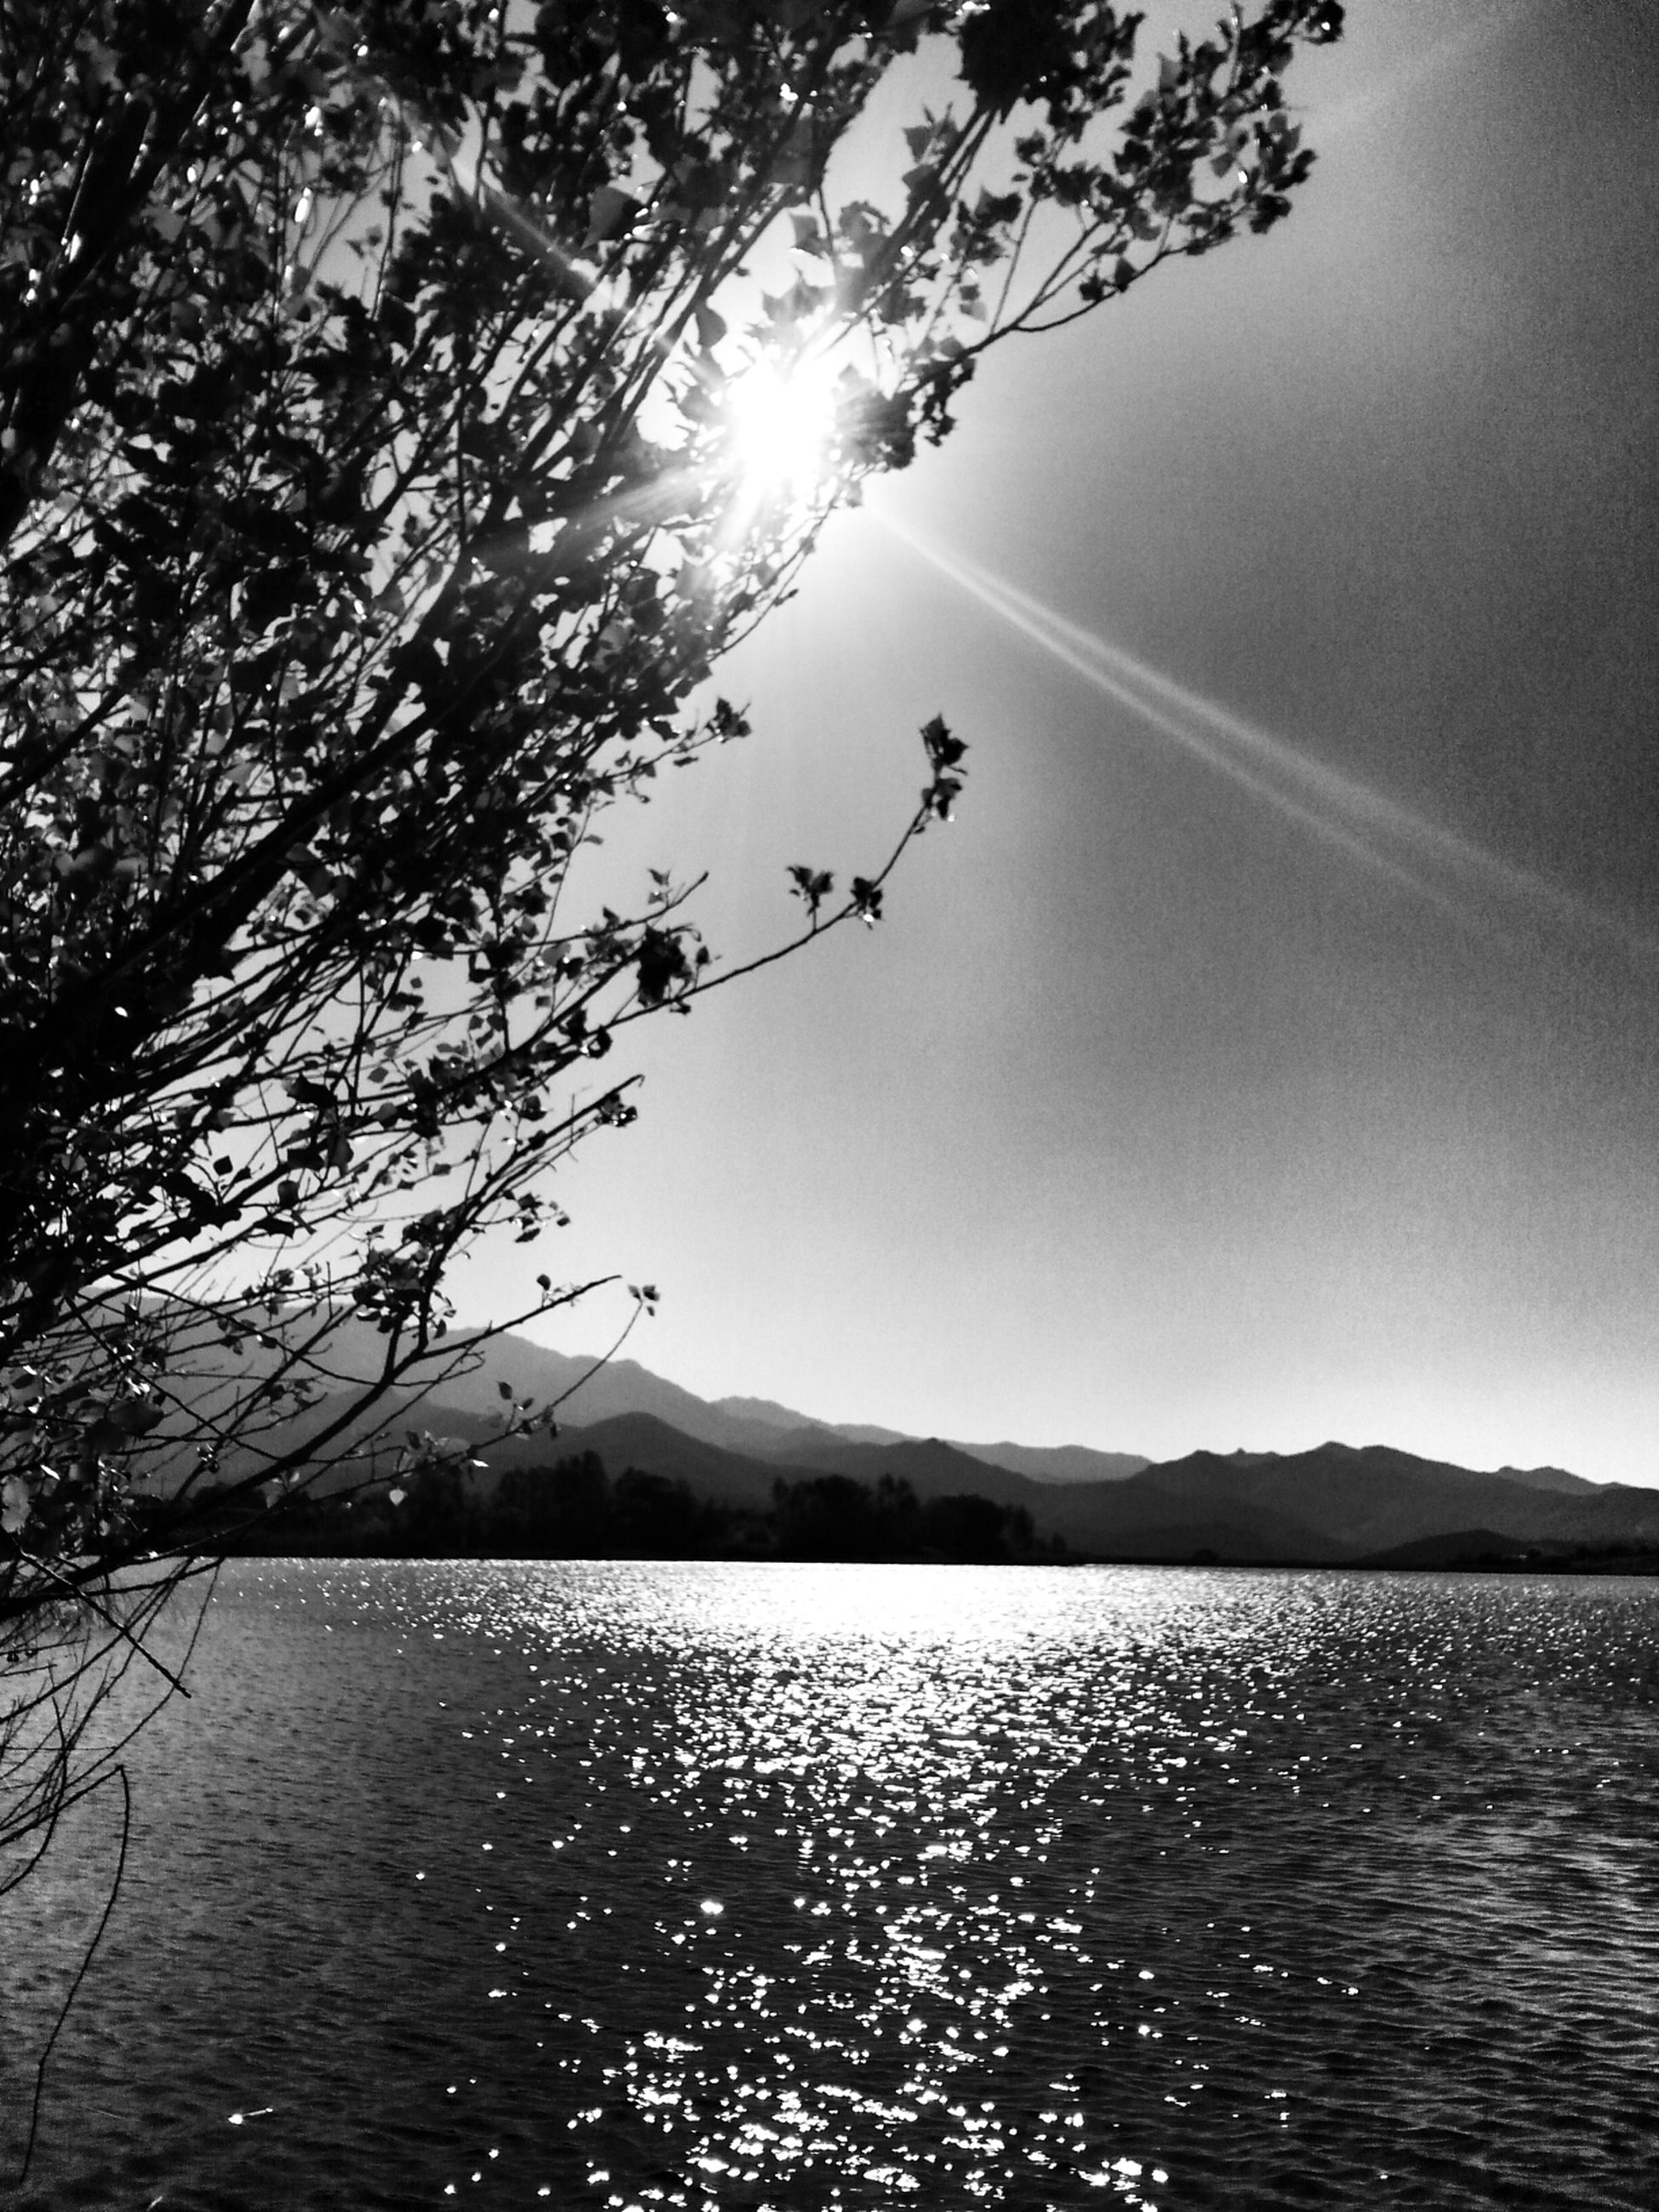 water, tree, tranquility, tranquil scene, scenics, waterfront, beauty in nature, nature, lake, sun, sky, sunlight, branch, silhouette, mountain, reflection, river, rippled, sunbeam, idyllic